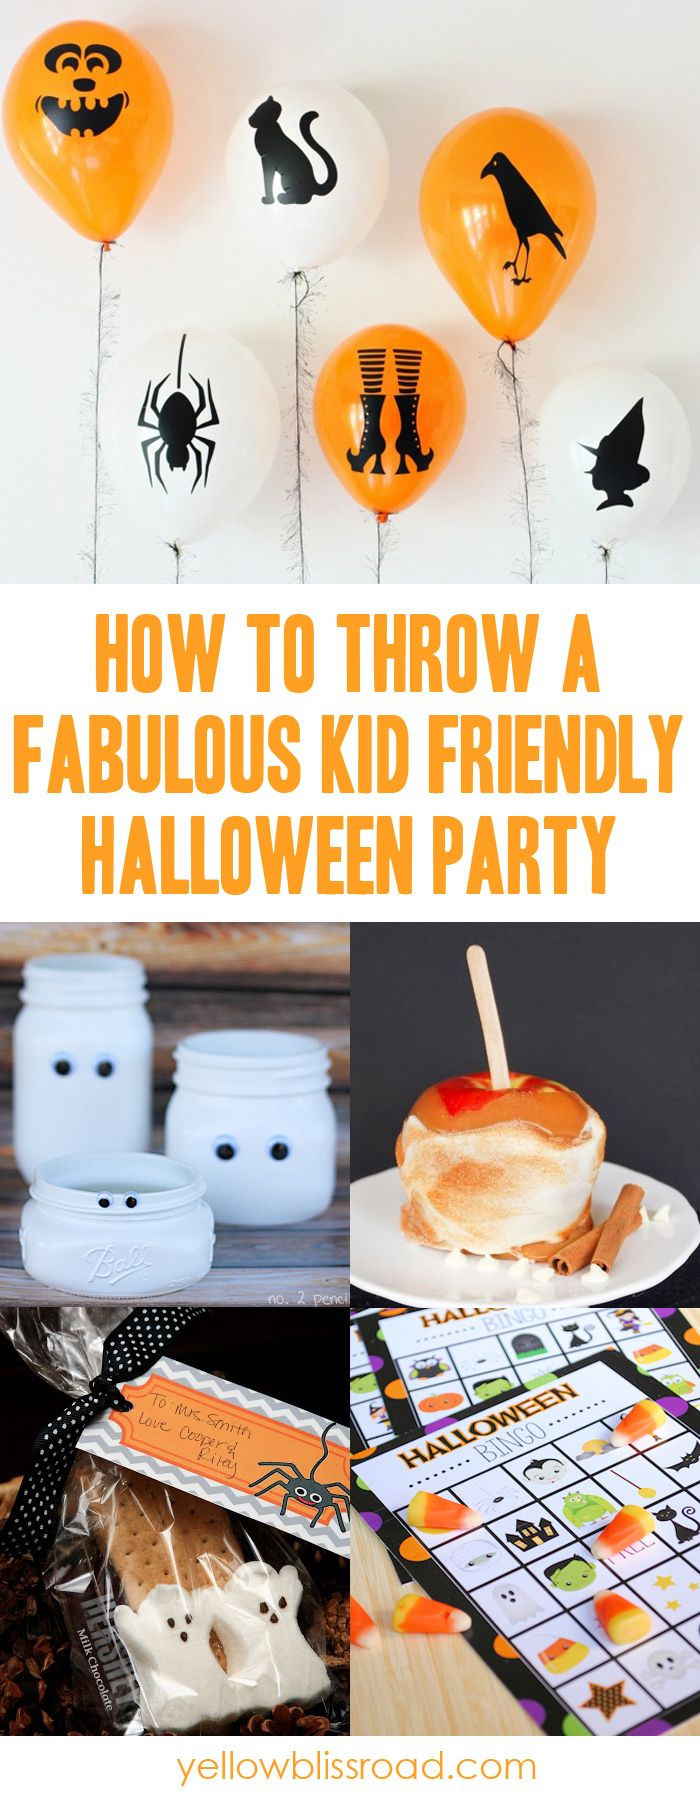 1000+ images about Halloween on Pinterest | Cute halloween ...